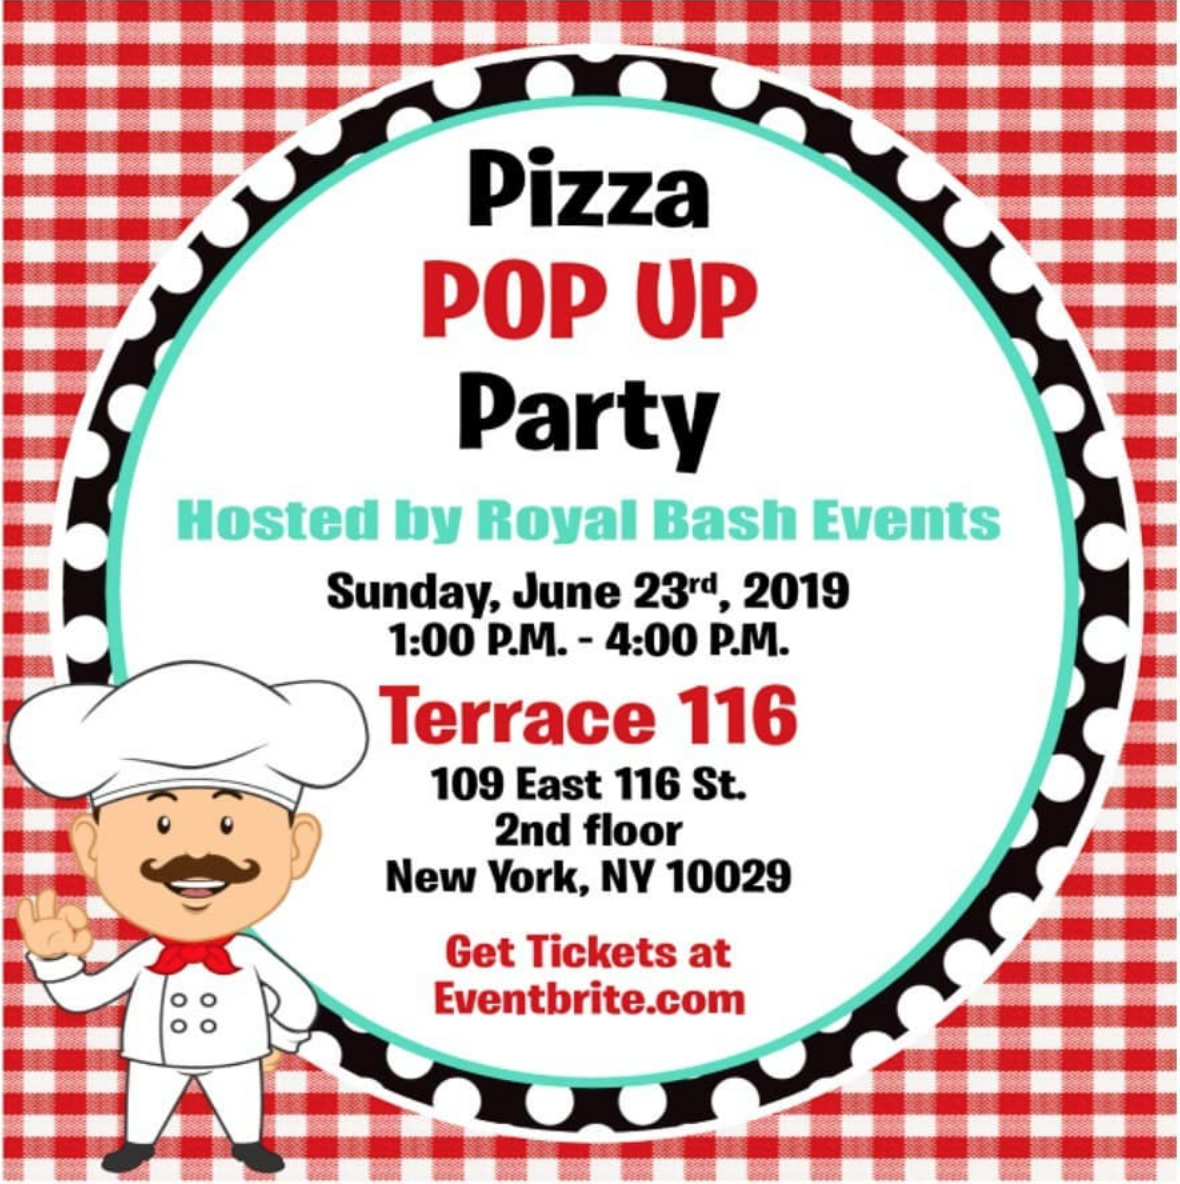 GET TICKETS ! - Our new pizza pop up party is coming.